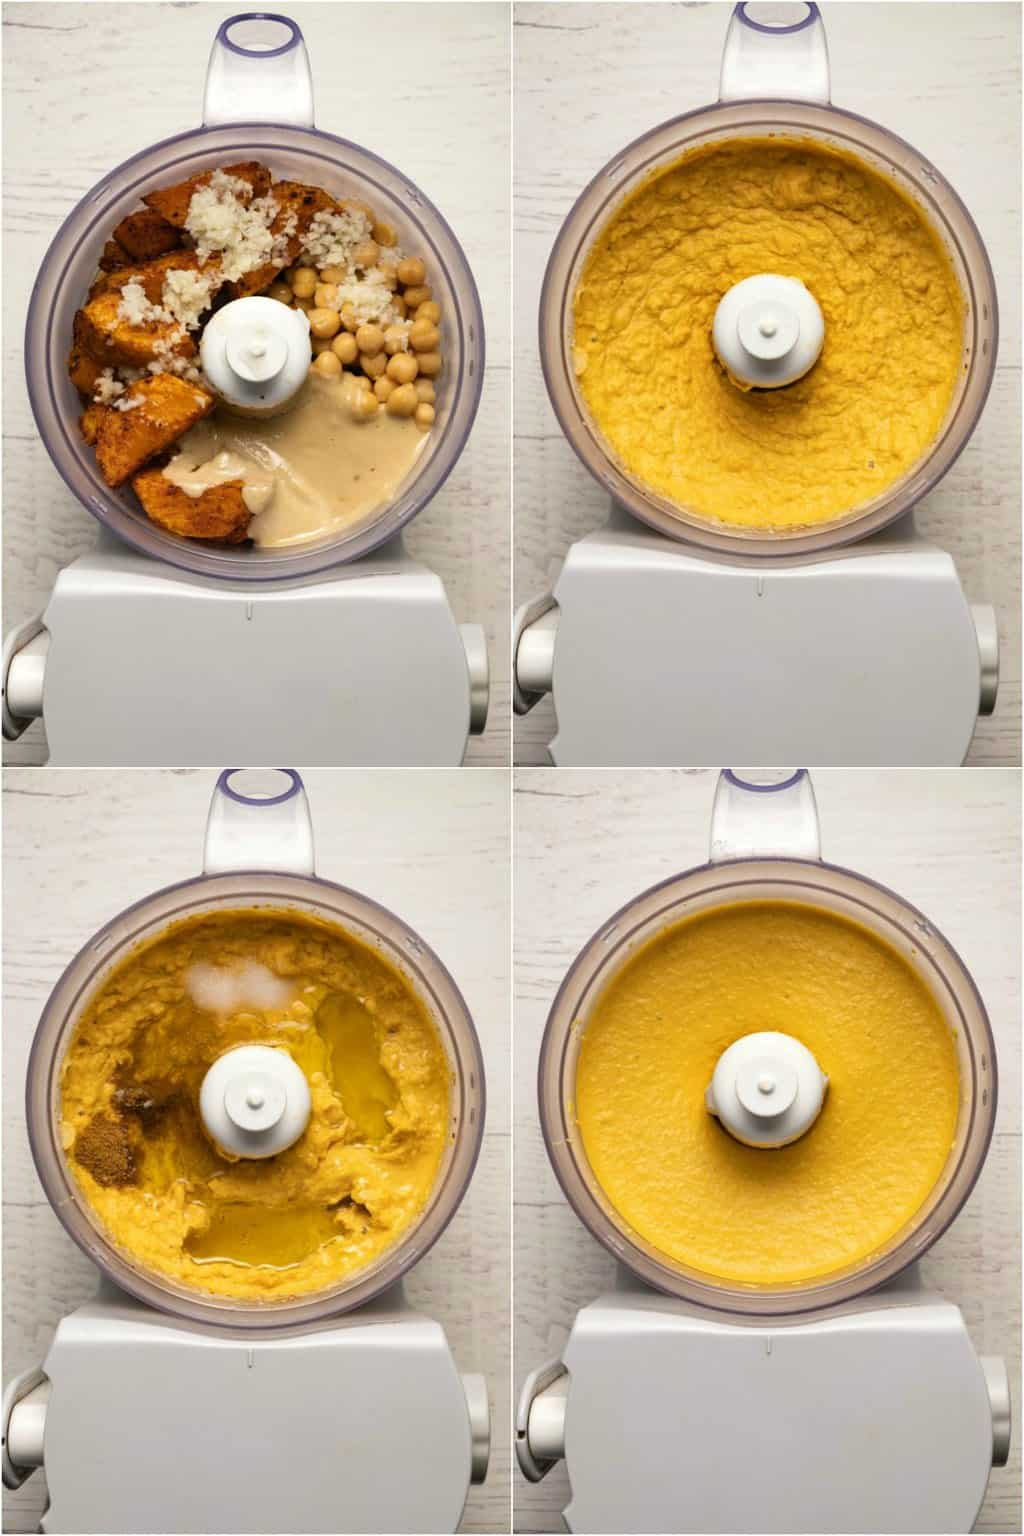 Step by step process photo collage of making butternut squash hummus.